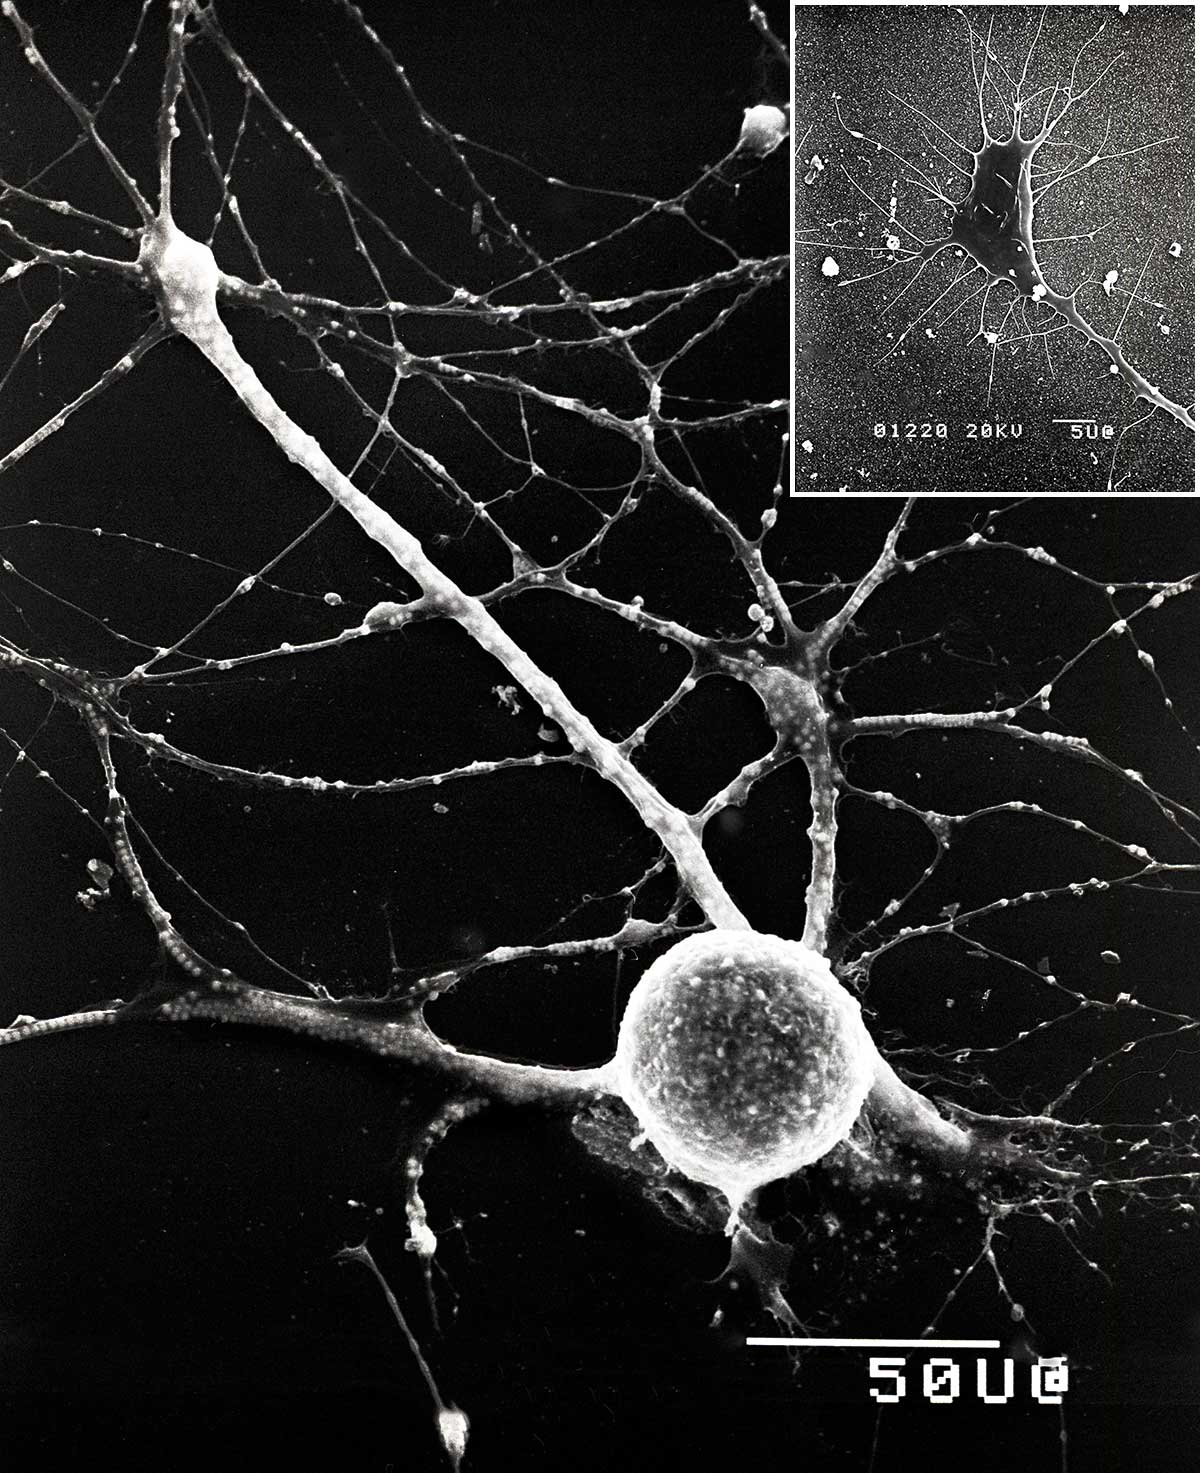 Isolated neuron and grown cone by scanning electron microscopy Robert Berdan ©